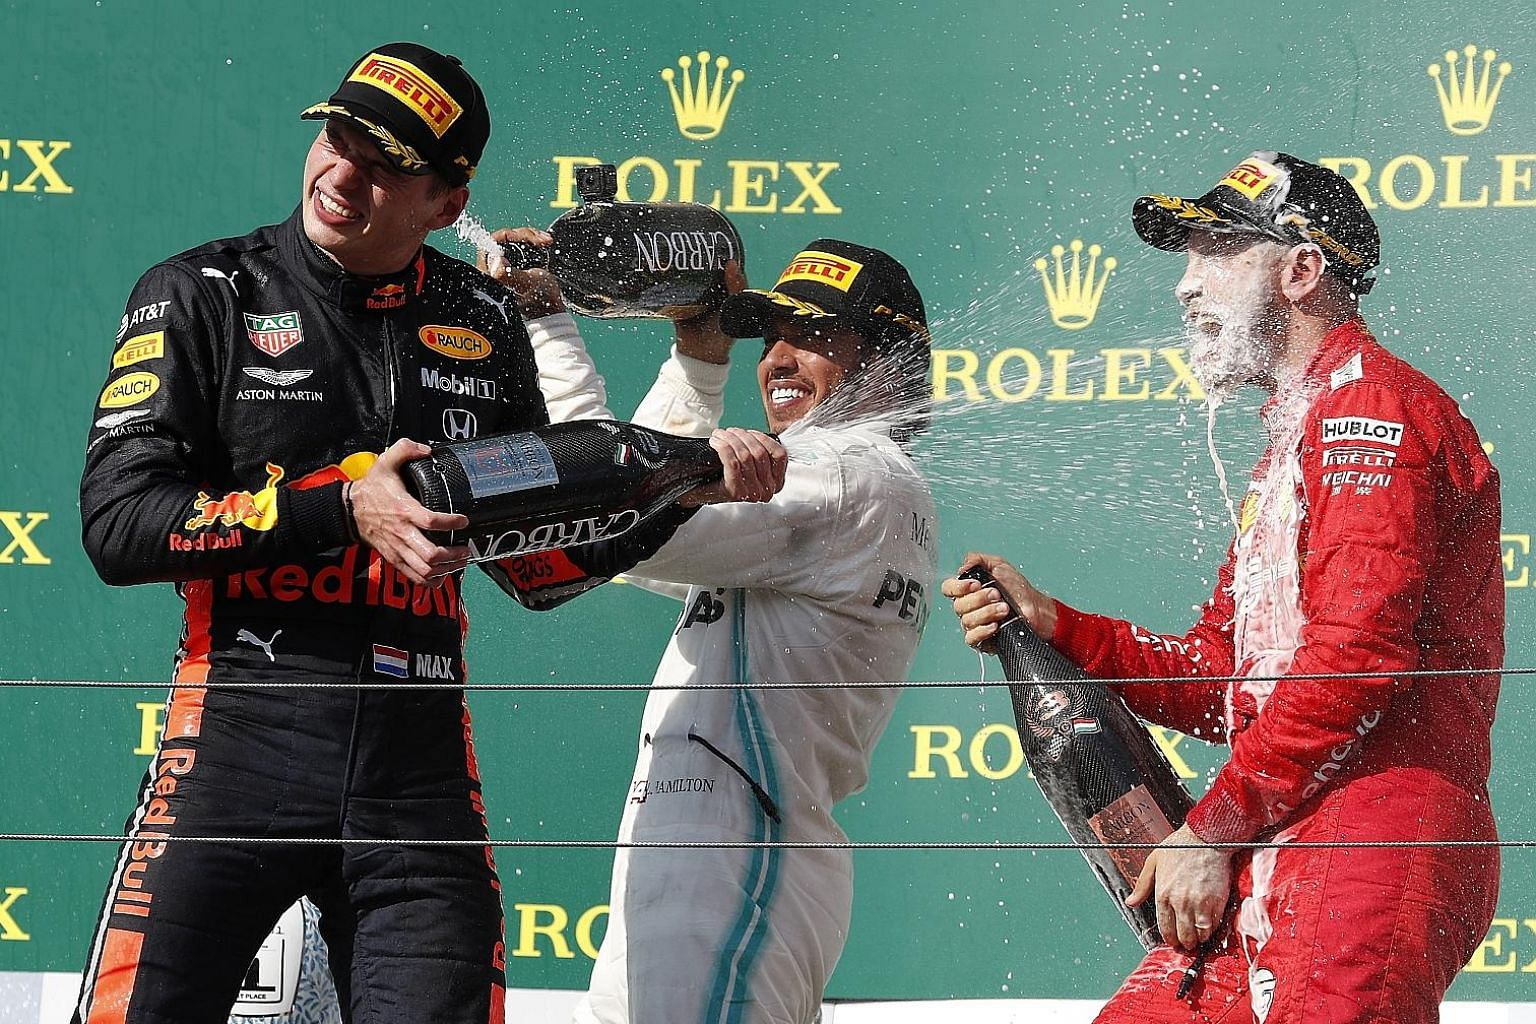 Ferrari's Sebastian Vettel (right) is not a happy man after finishing third in the Hungarian Grand Prix behind Mercedes' Lewis Hamilton (centre) and Red Bull's Max Verstappen. Vettel has underperformed this season after excelling in testing - falling